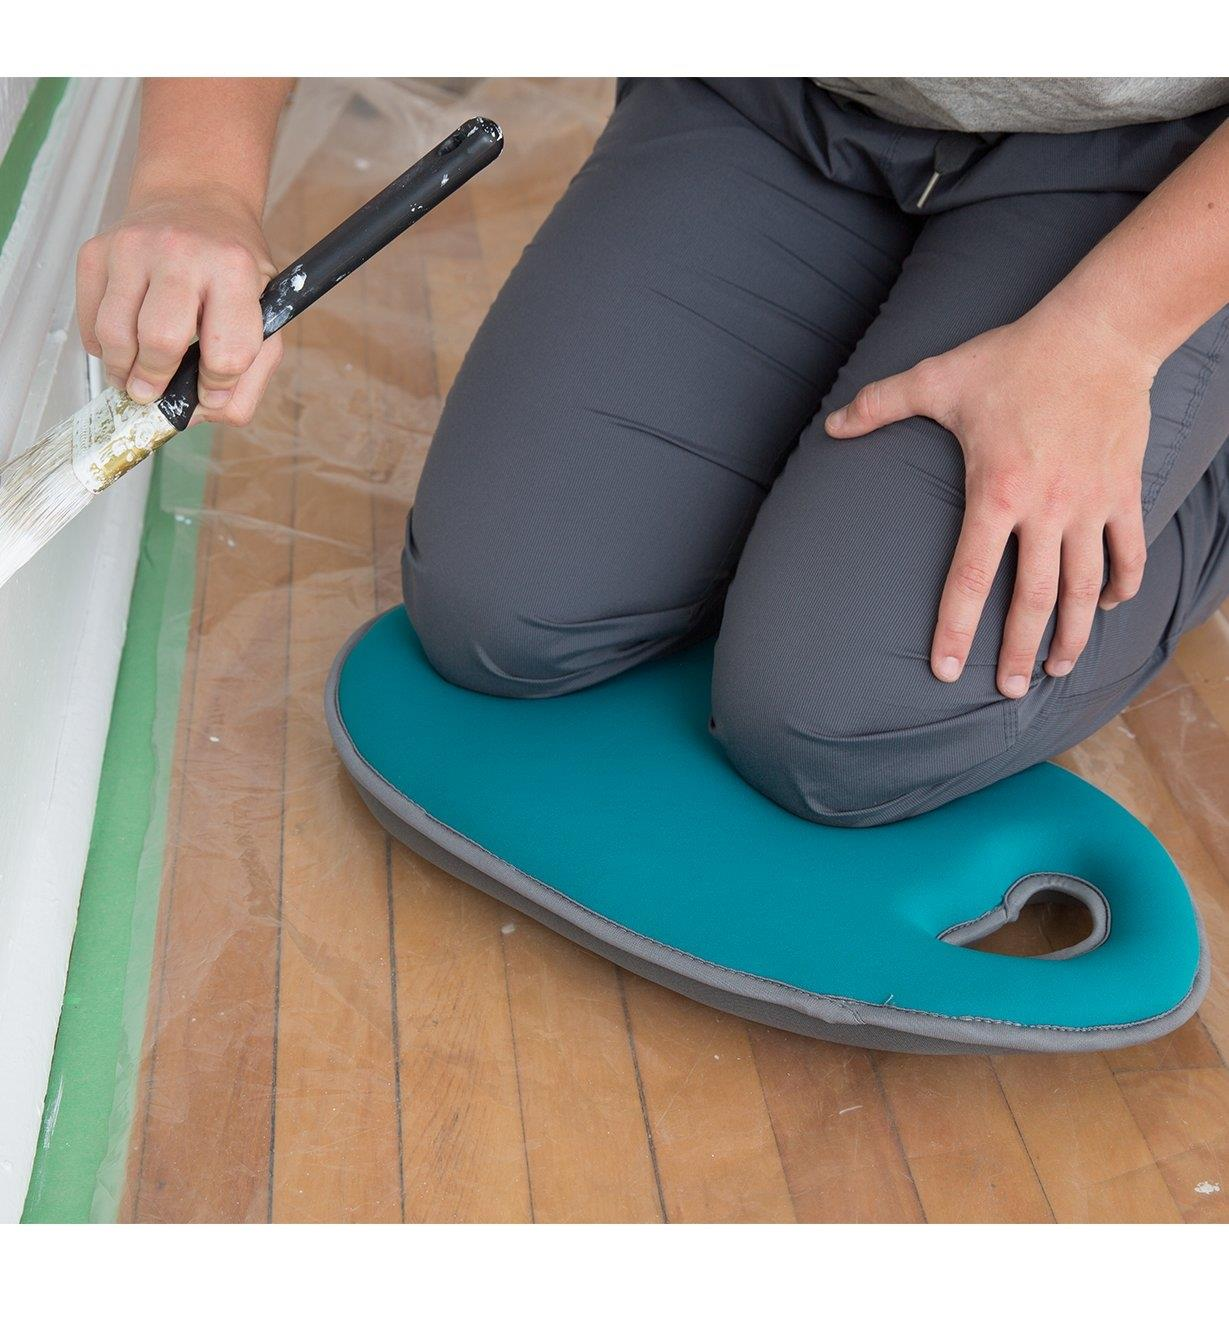 A person kneels on the Teal Kneeling Pad while painting trim in a house